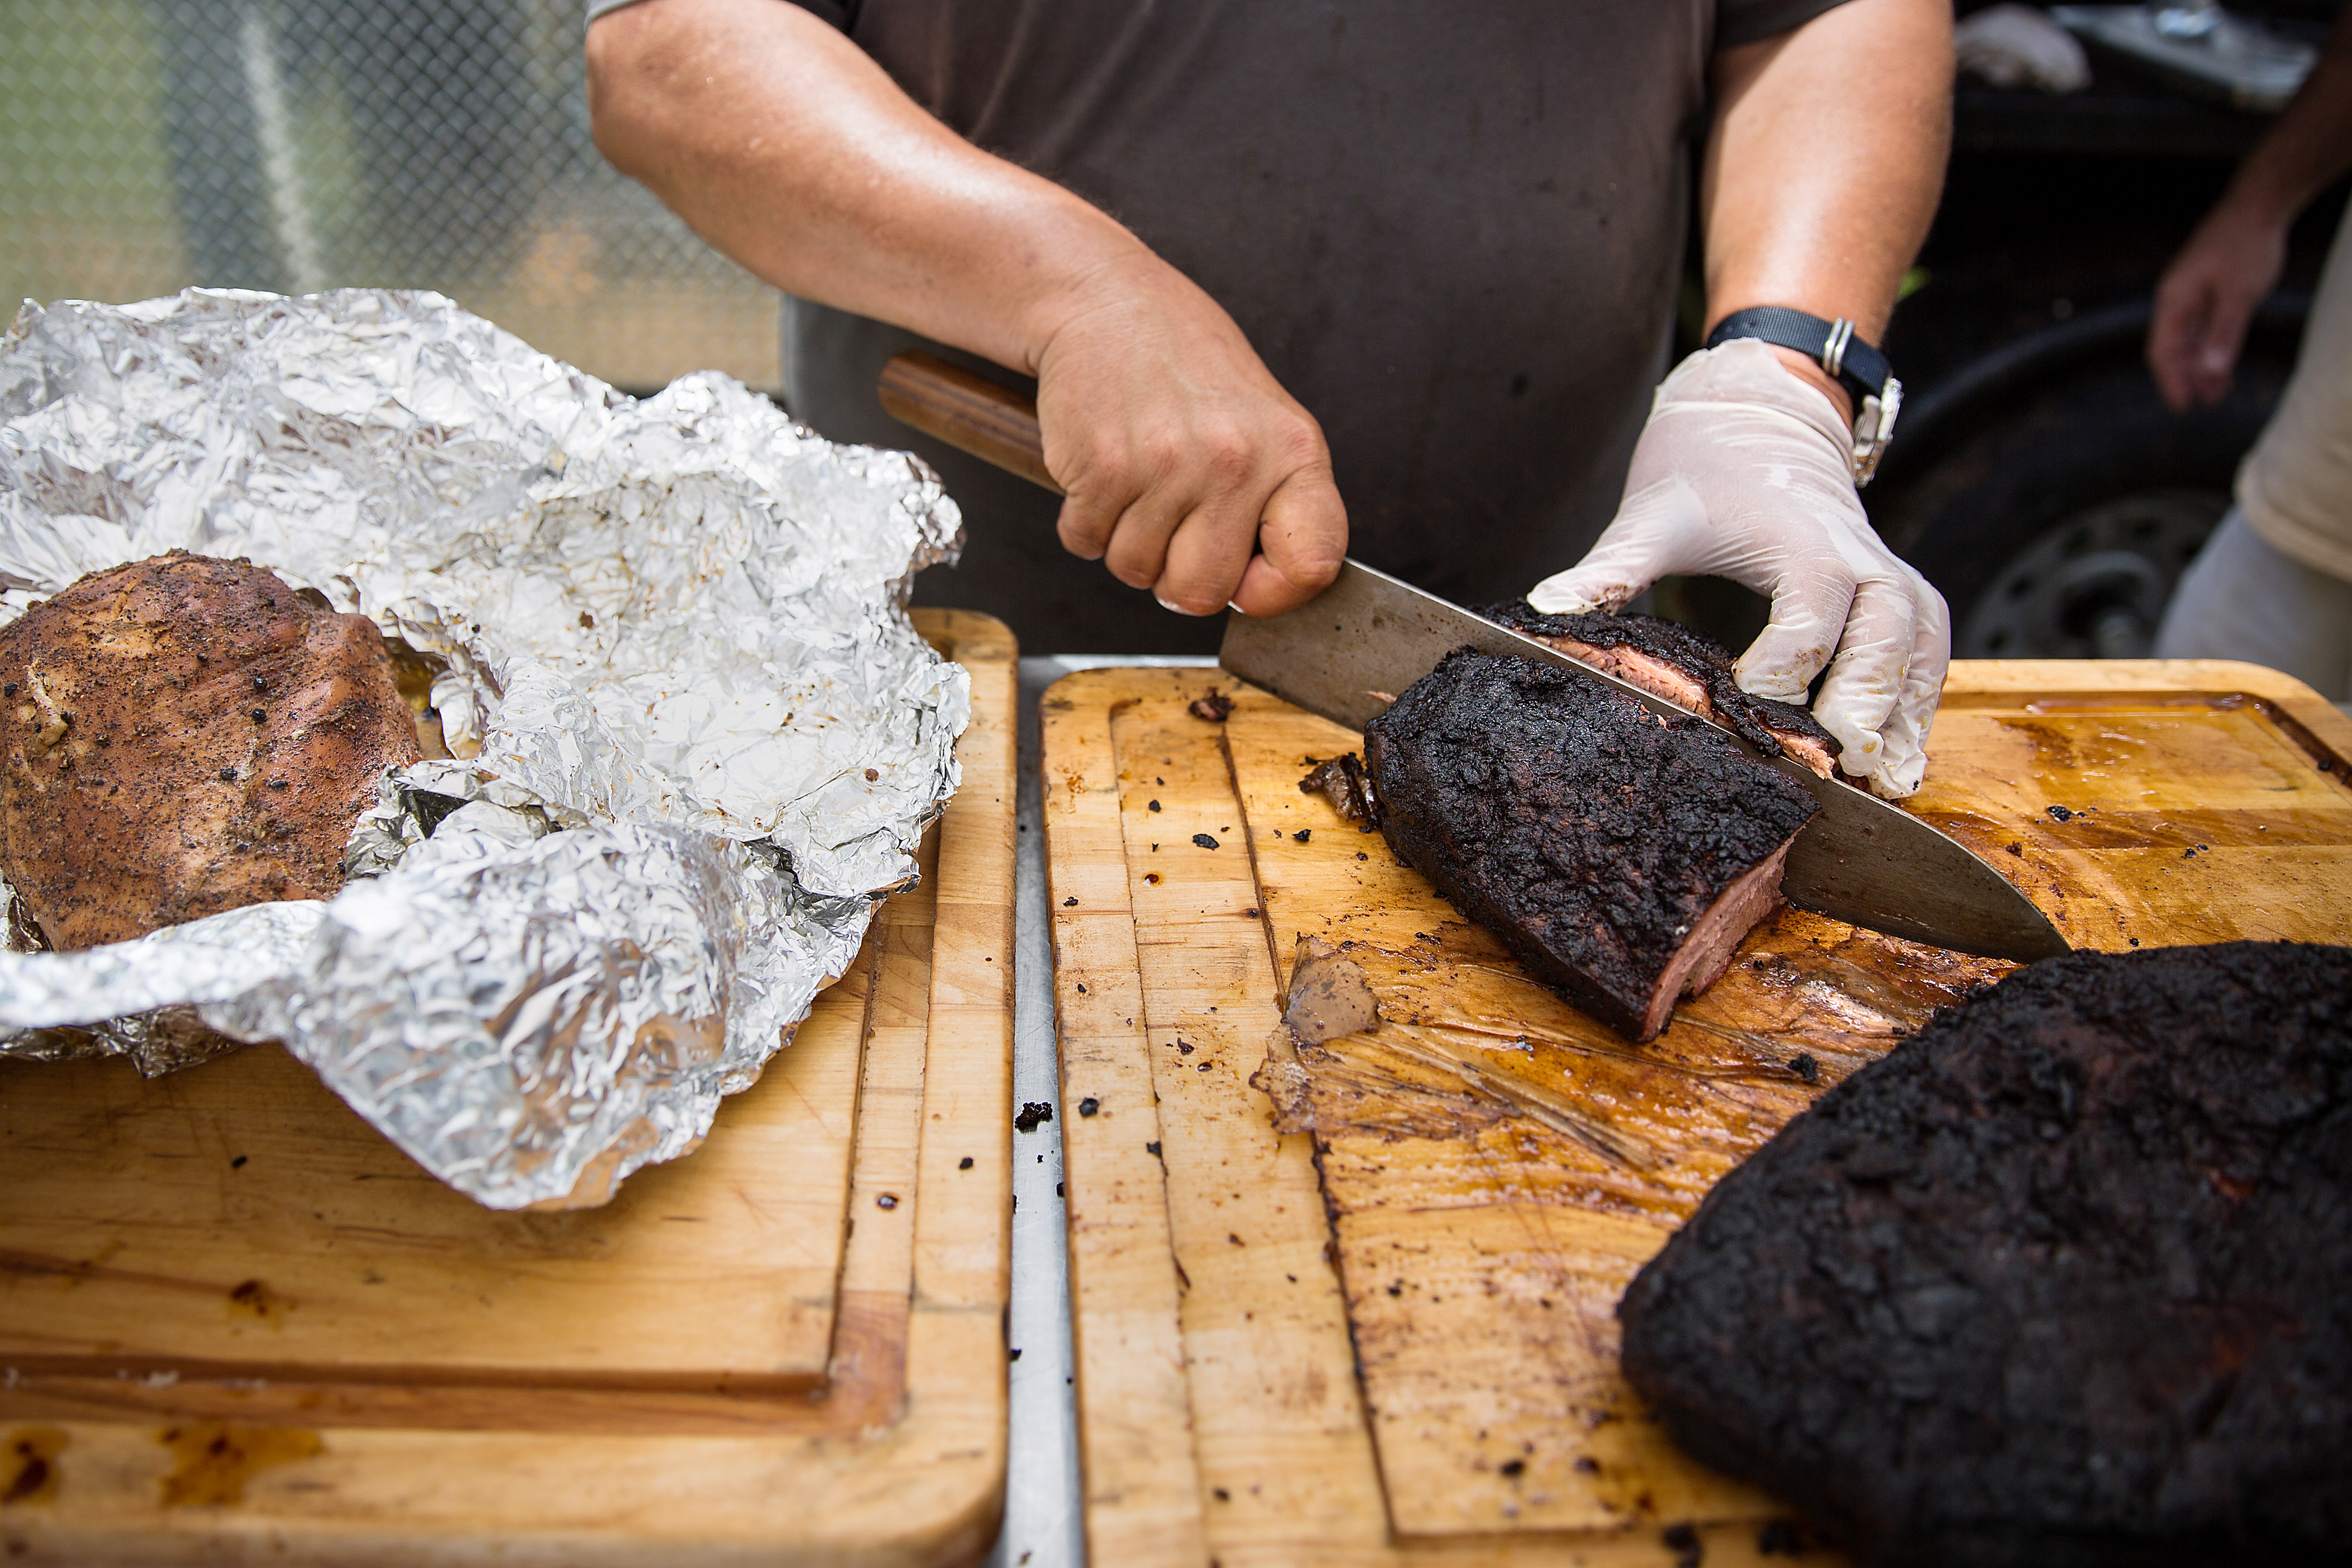 Spork Pit Chris Frangiadis cuts up a brisket during the opening of Spork Pit, a Texas-style BBQ pit next to Spork restaurant, which serves slow and low smoked meats in Garfield.